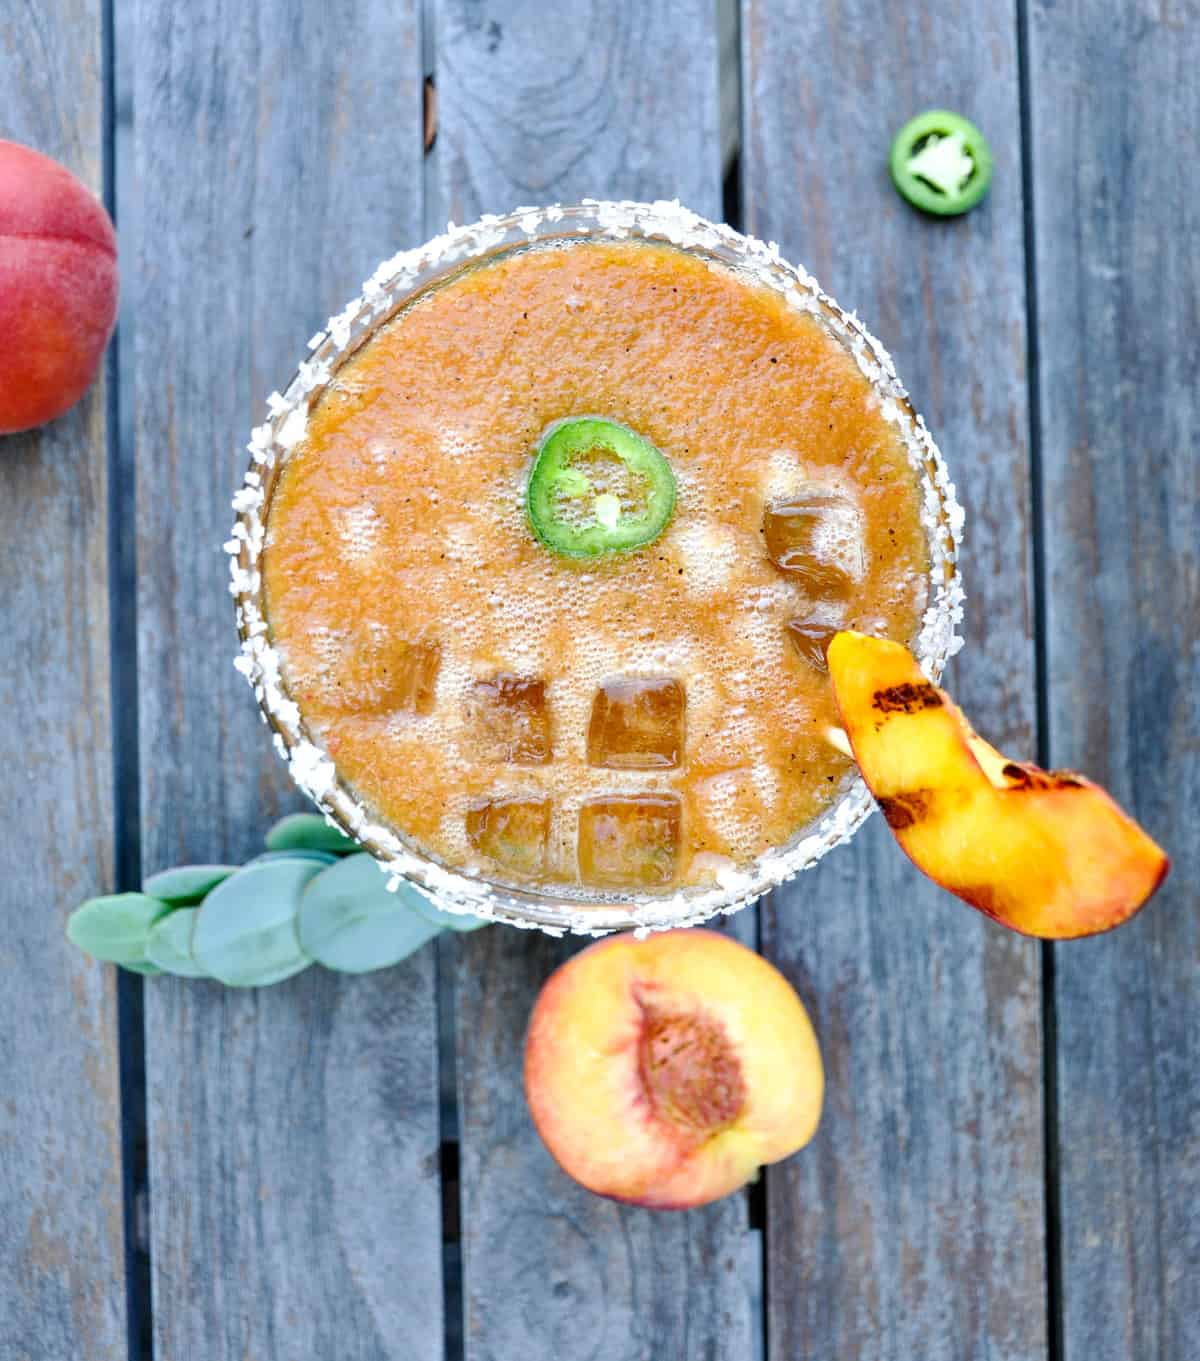 Cool Margarita Recipes Made With Fresh Ingredients